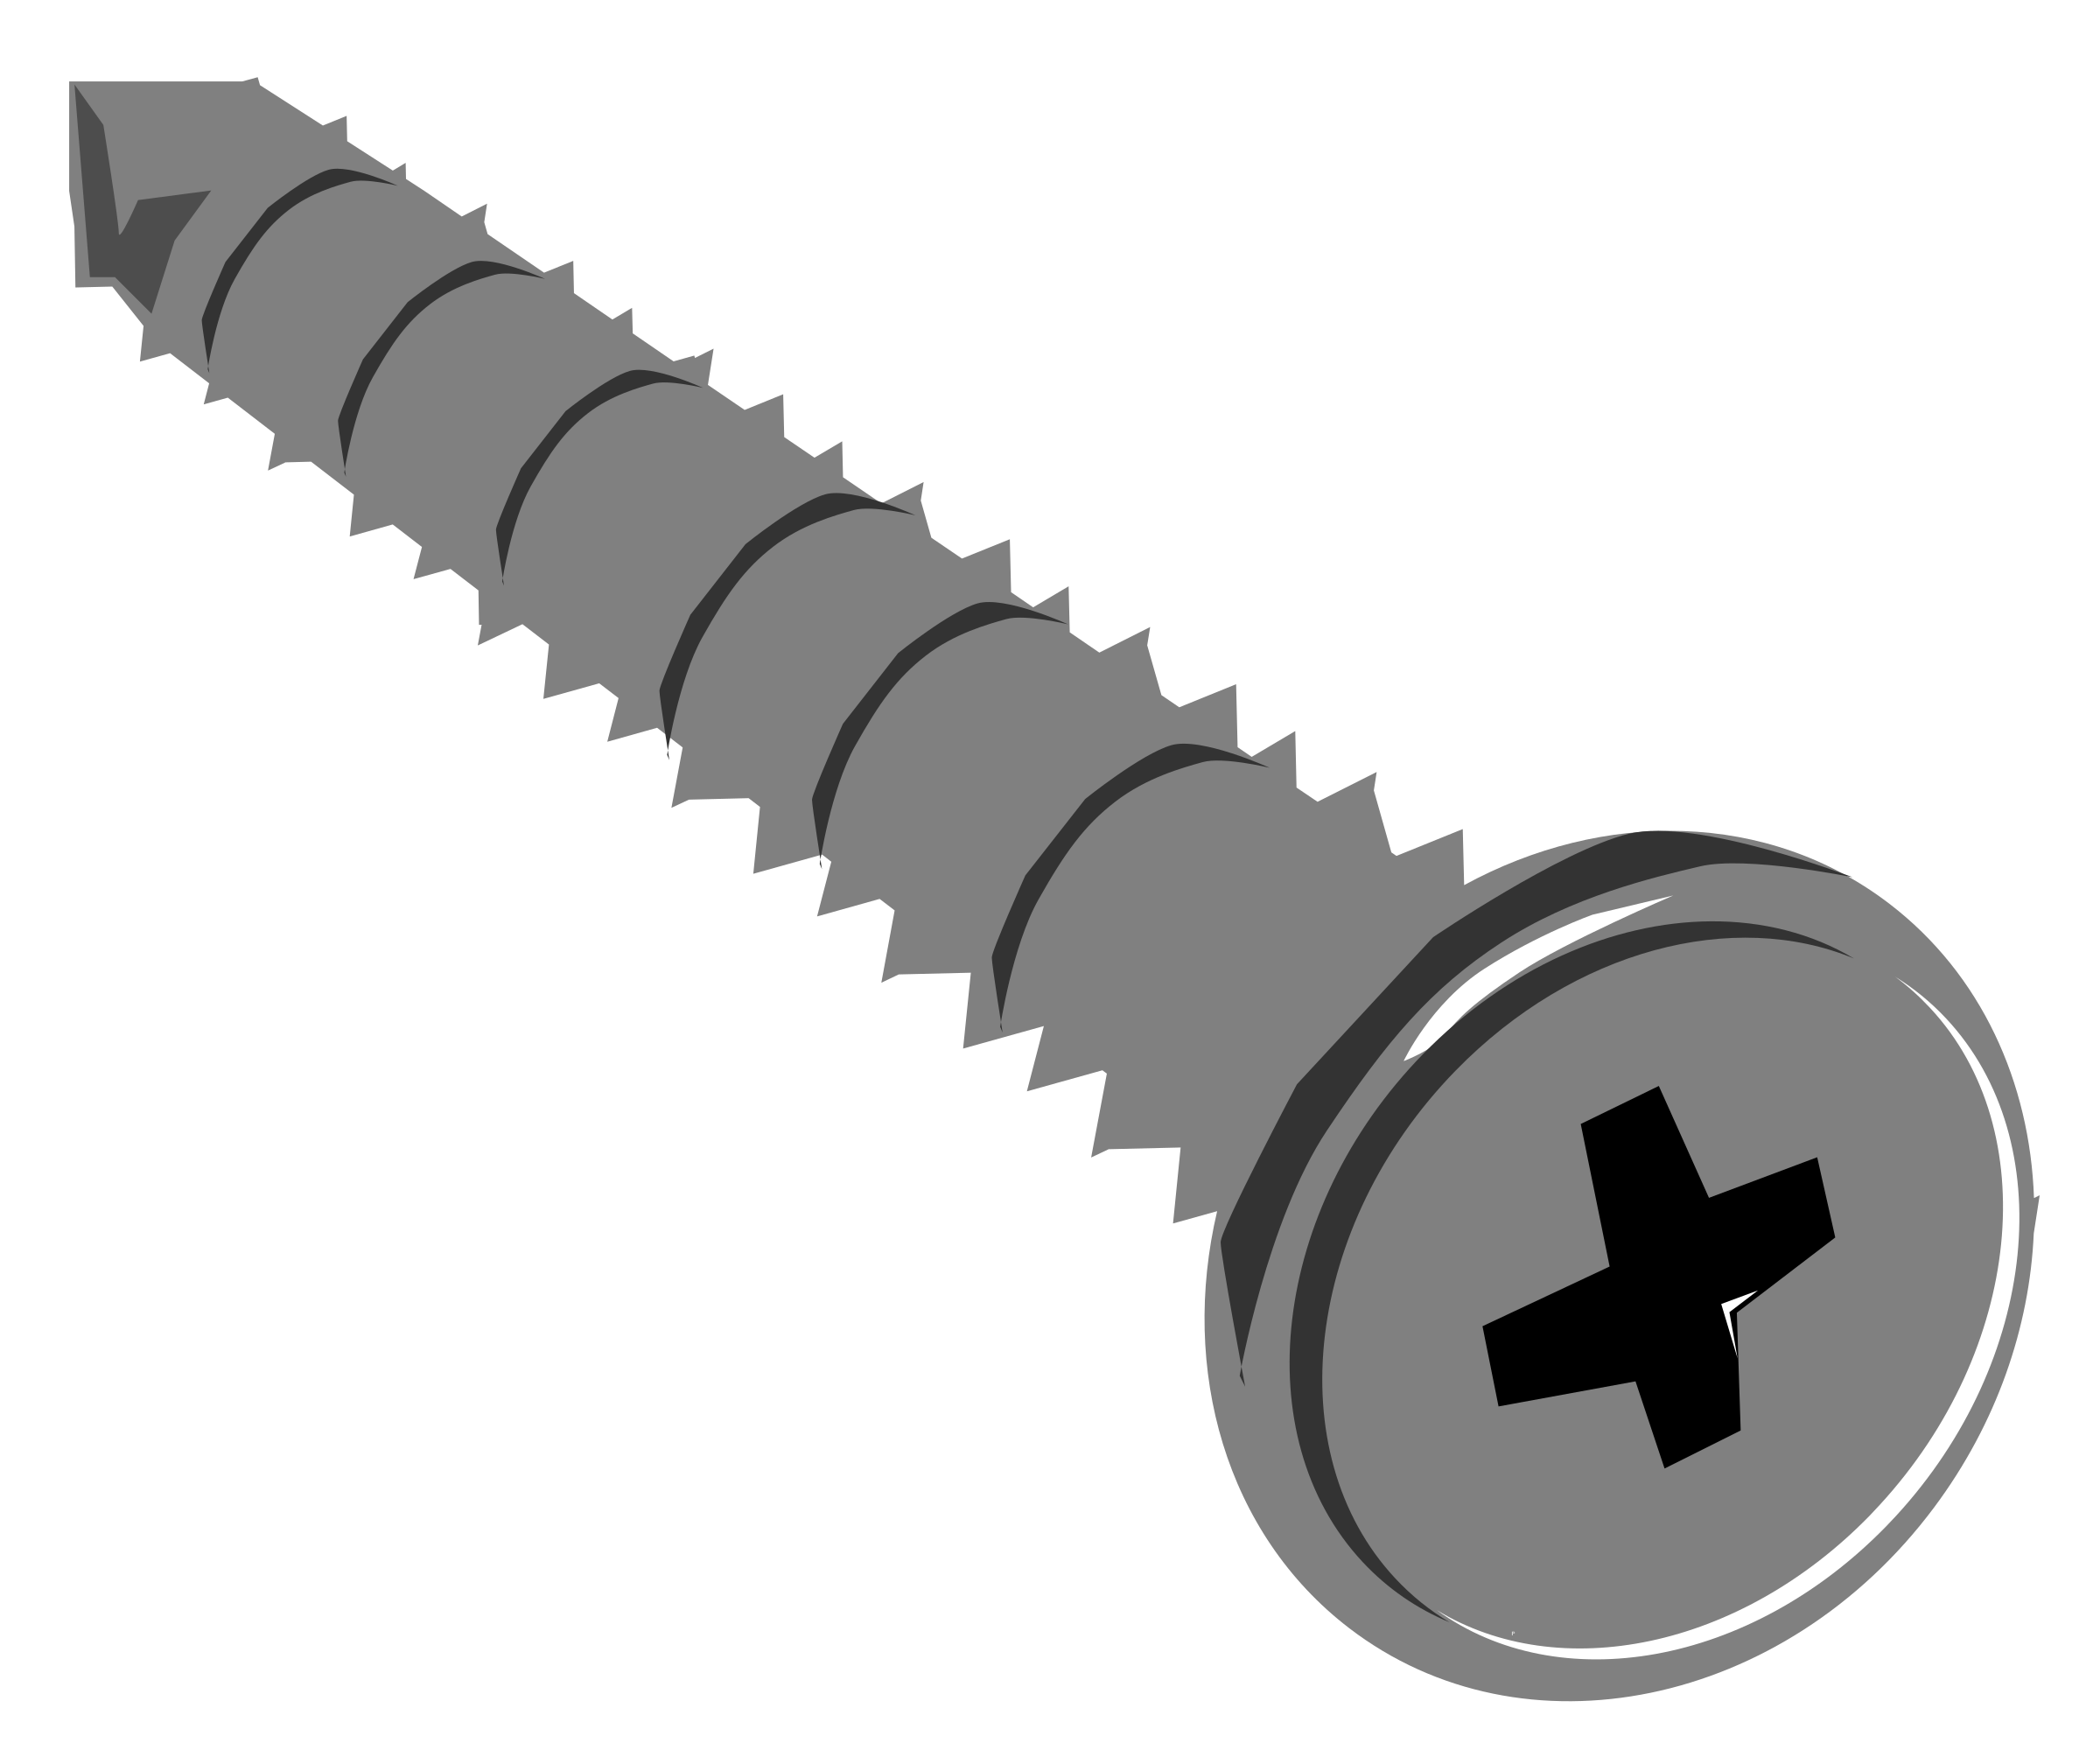 Nut clipart screw nut. Png transparent images all